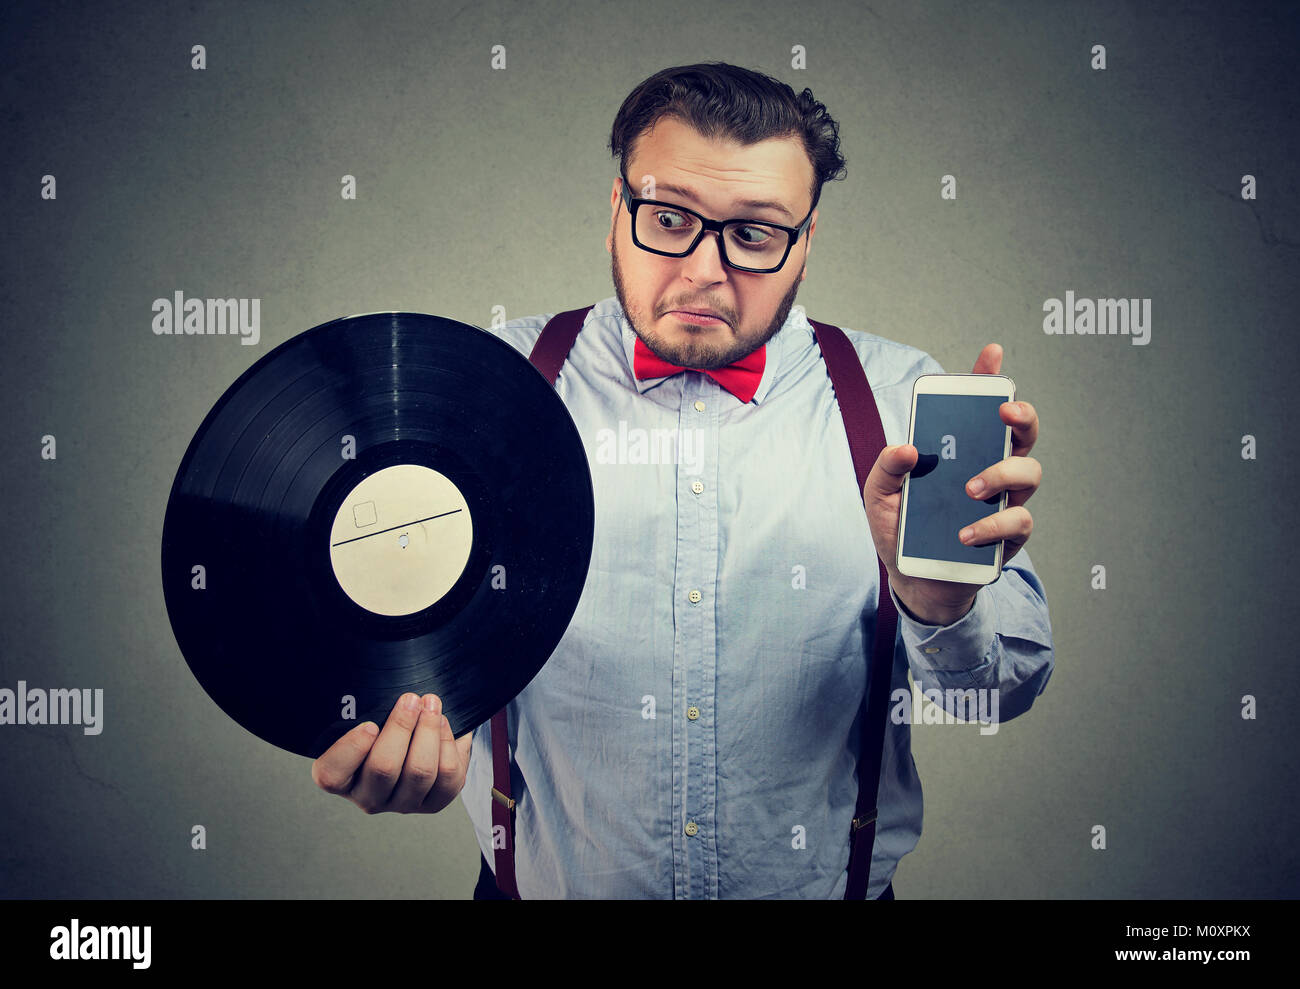 Chunky man holding vinyl record and smartphone comparing old and new. - Stock Image